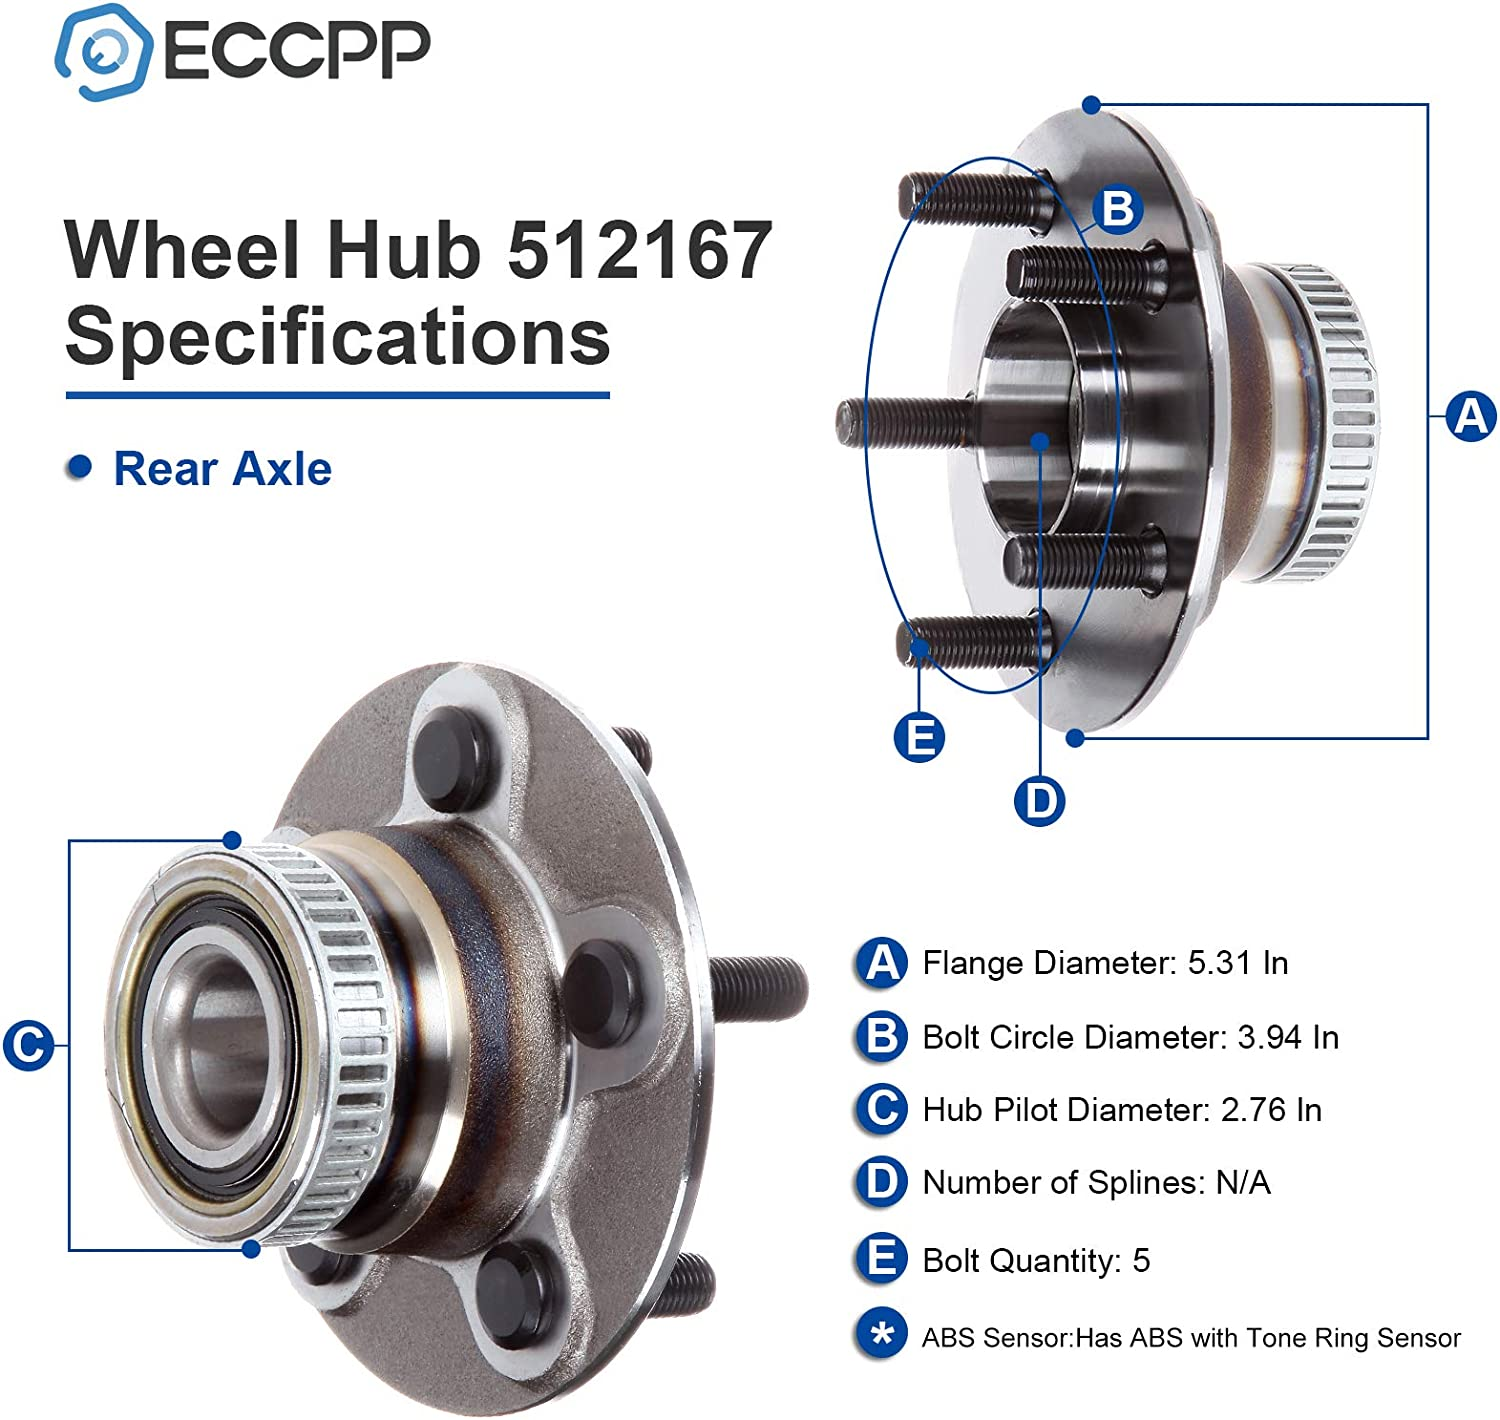 ECCPP Rear Wheel Bearing and Hub Assembly Compatible with C hrysler PT Cruiser Neon Plymouth Neon Dodge Neon SX 00-06 07 08 09 10 Wheel Hub 512167 5-Lug w//ABS